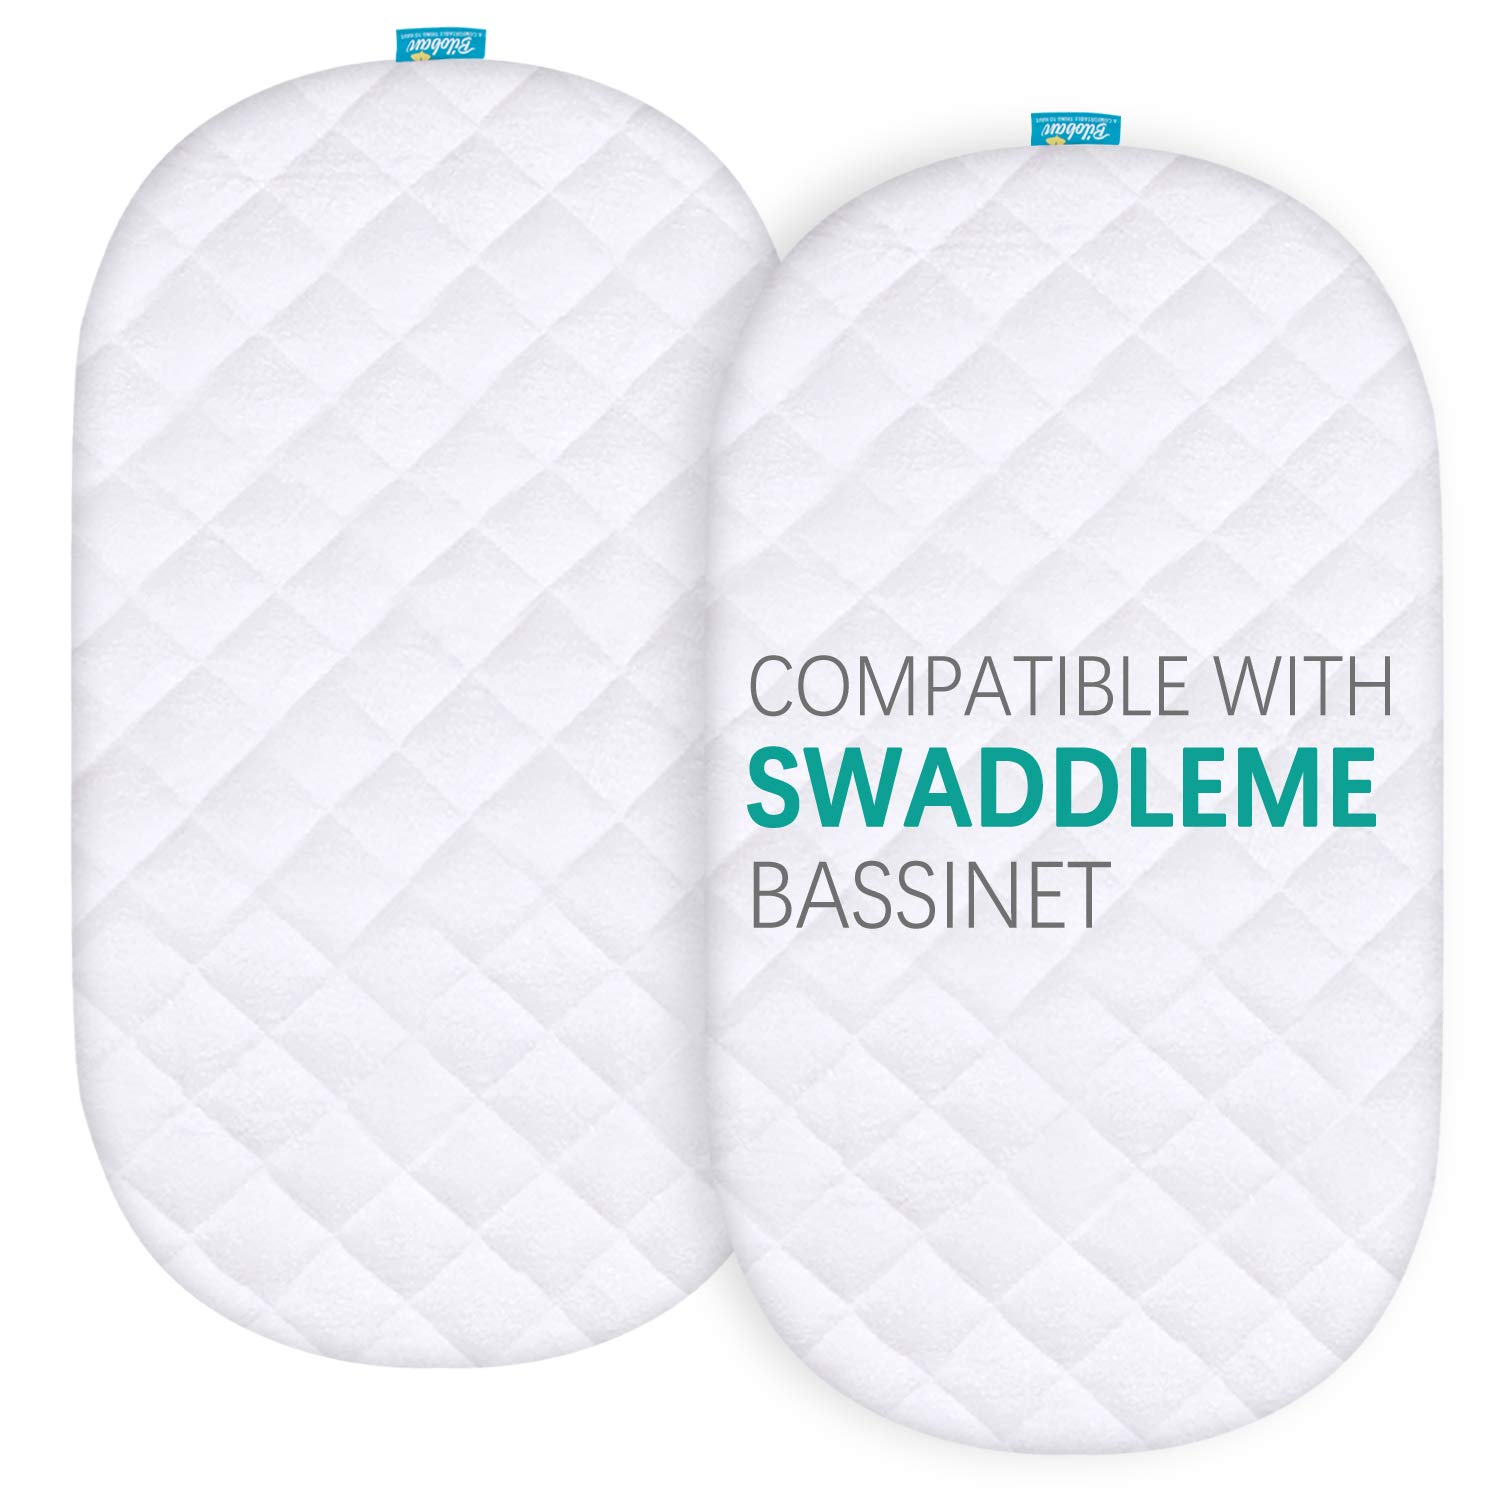 Bassinet Mattress Pad Cover Compatible with SwaddleMe by Your Side Sleeper, 2 Pack, Waterproof Quilted Ultra Soft Bamboo Sleep Surface, Breathable and Easy Care